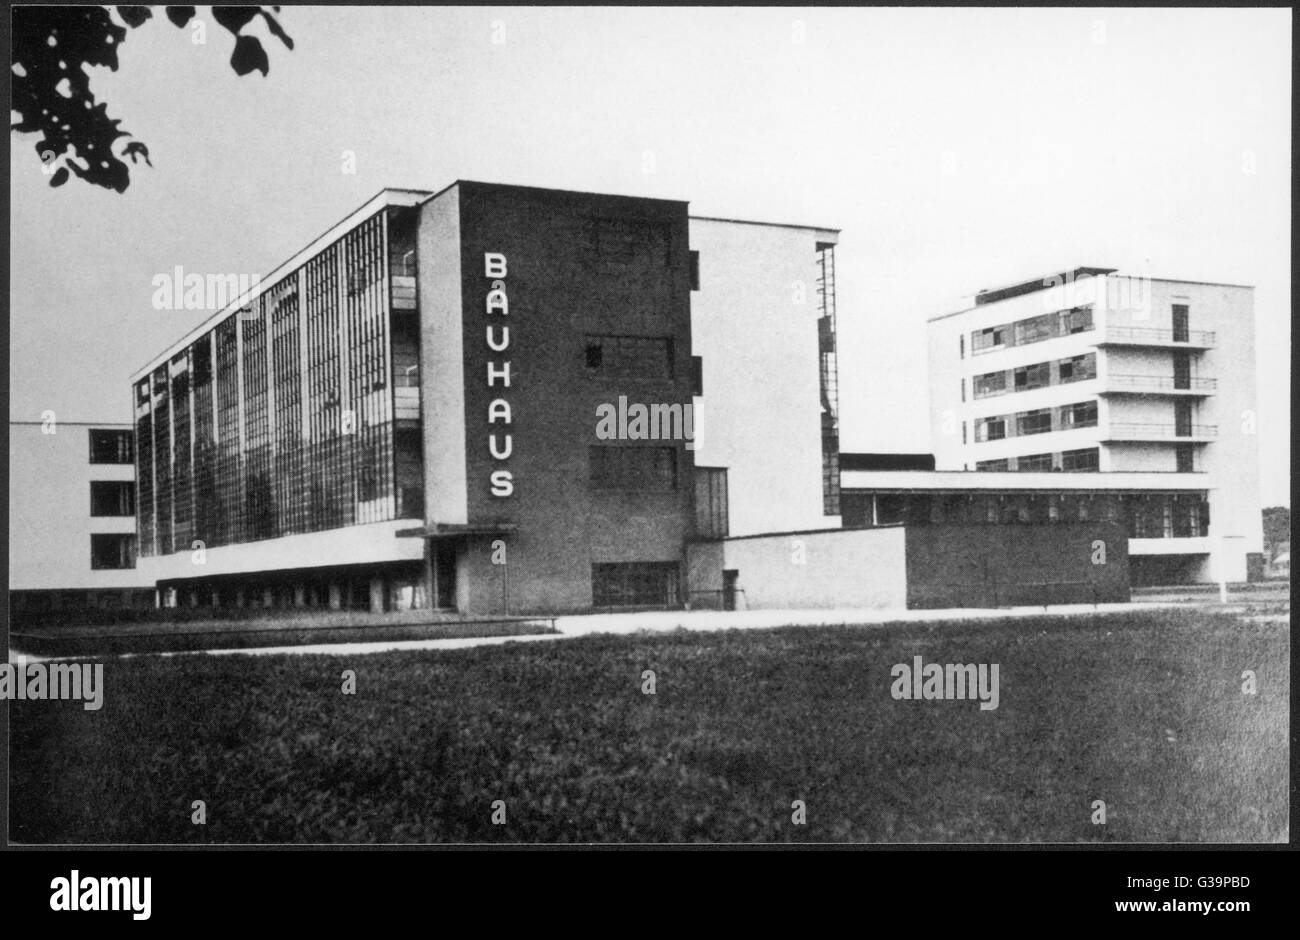 The Bauhaus building in  Dessau, manufacturing city in  eastern Germany. The building  was built in 1925 - 26 by Stock Photo